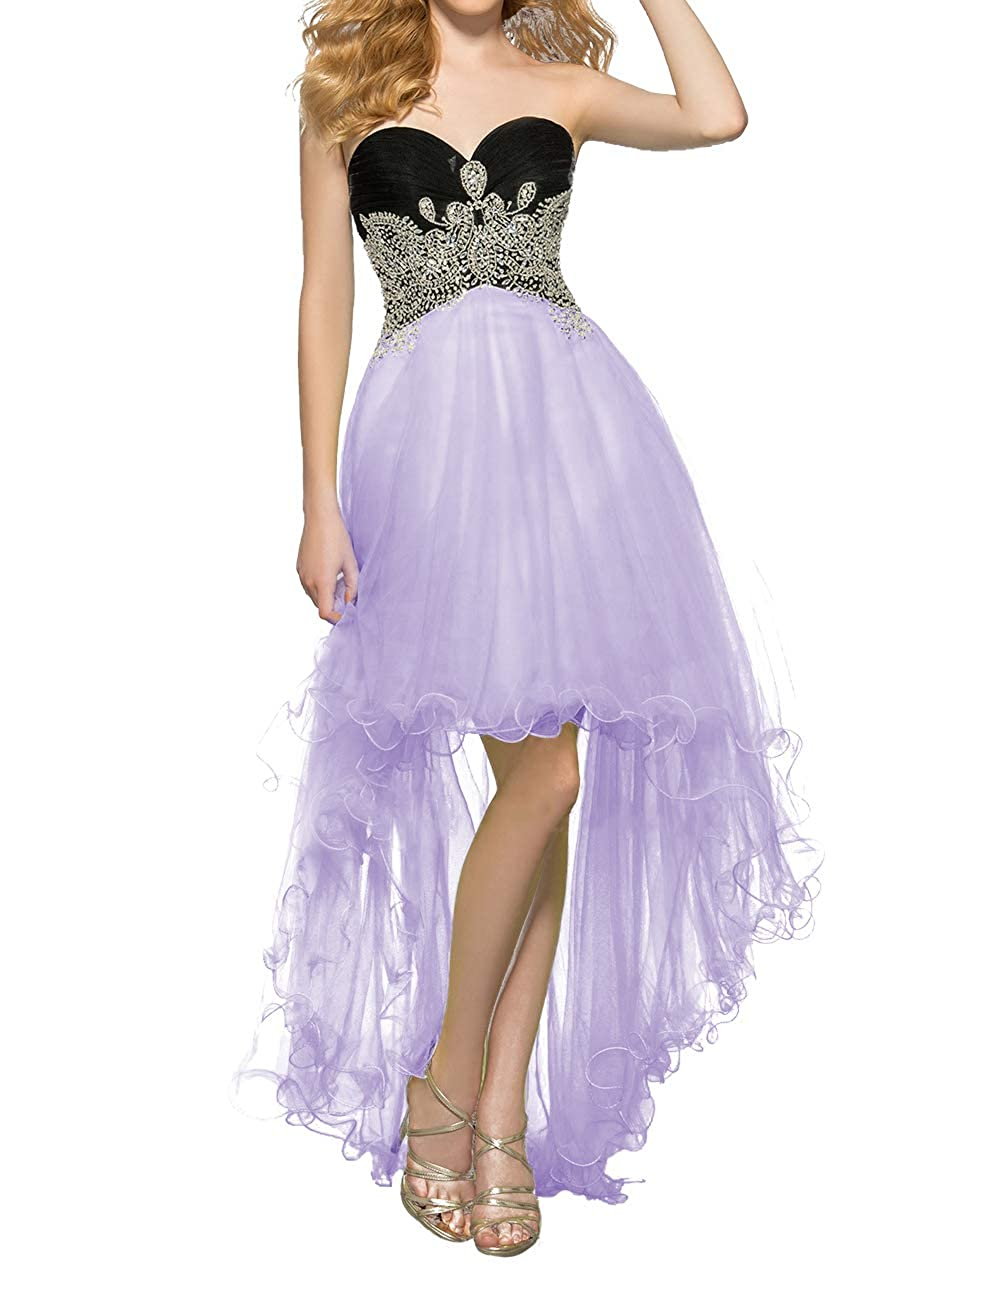 Lavender Uther Women's Tulle HiLow Beaded Prom Dresses Strapless Evening Homecoming Cocktail Gowns